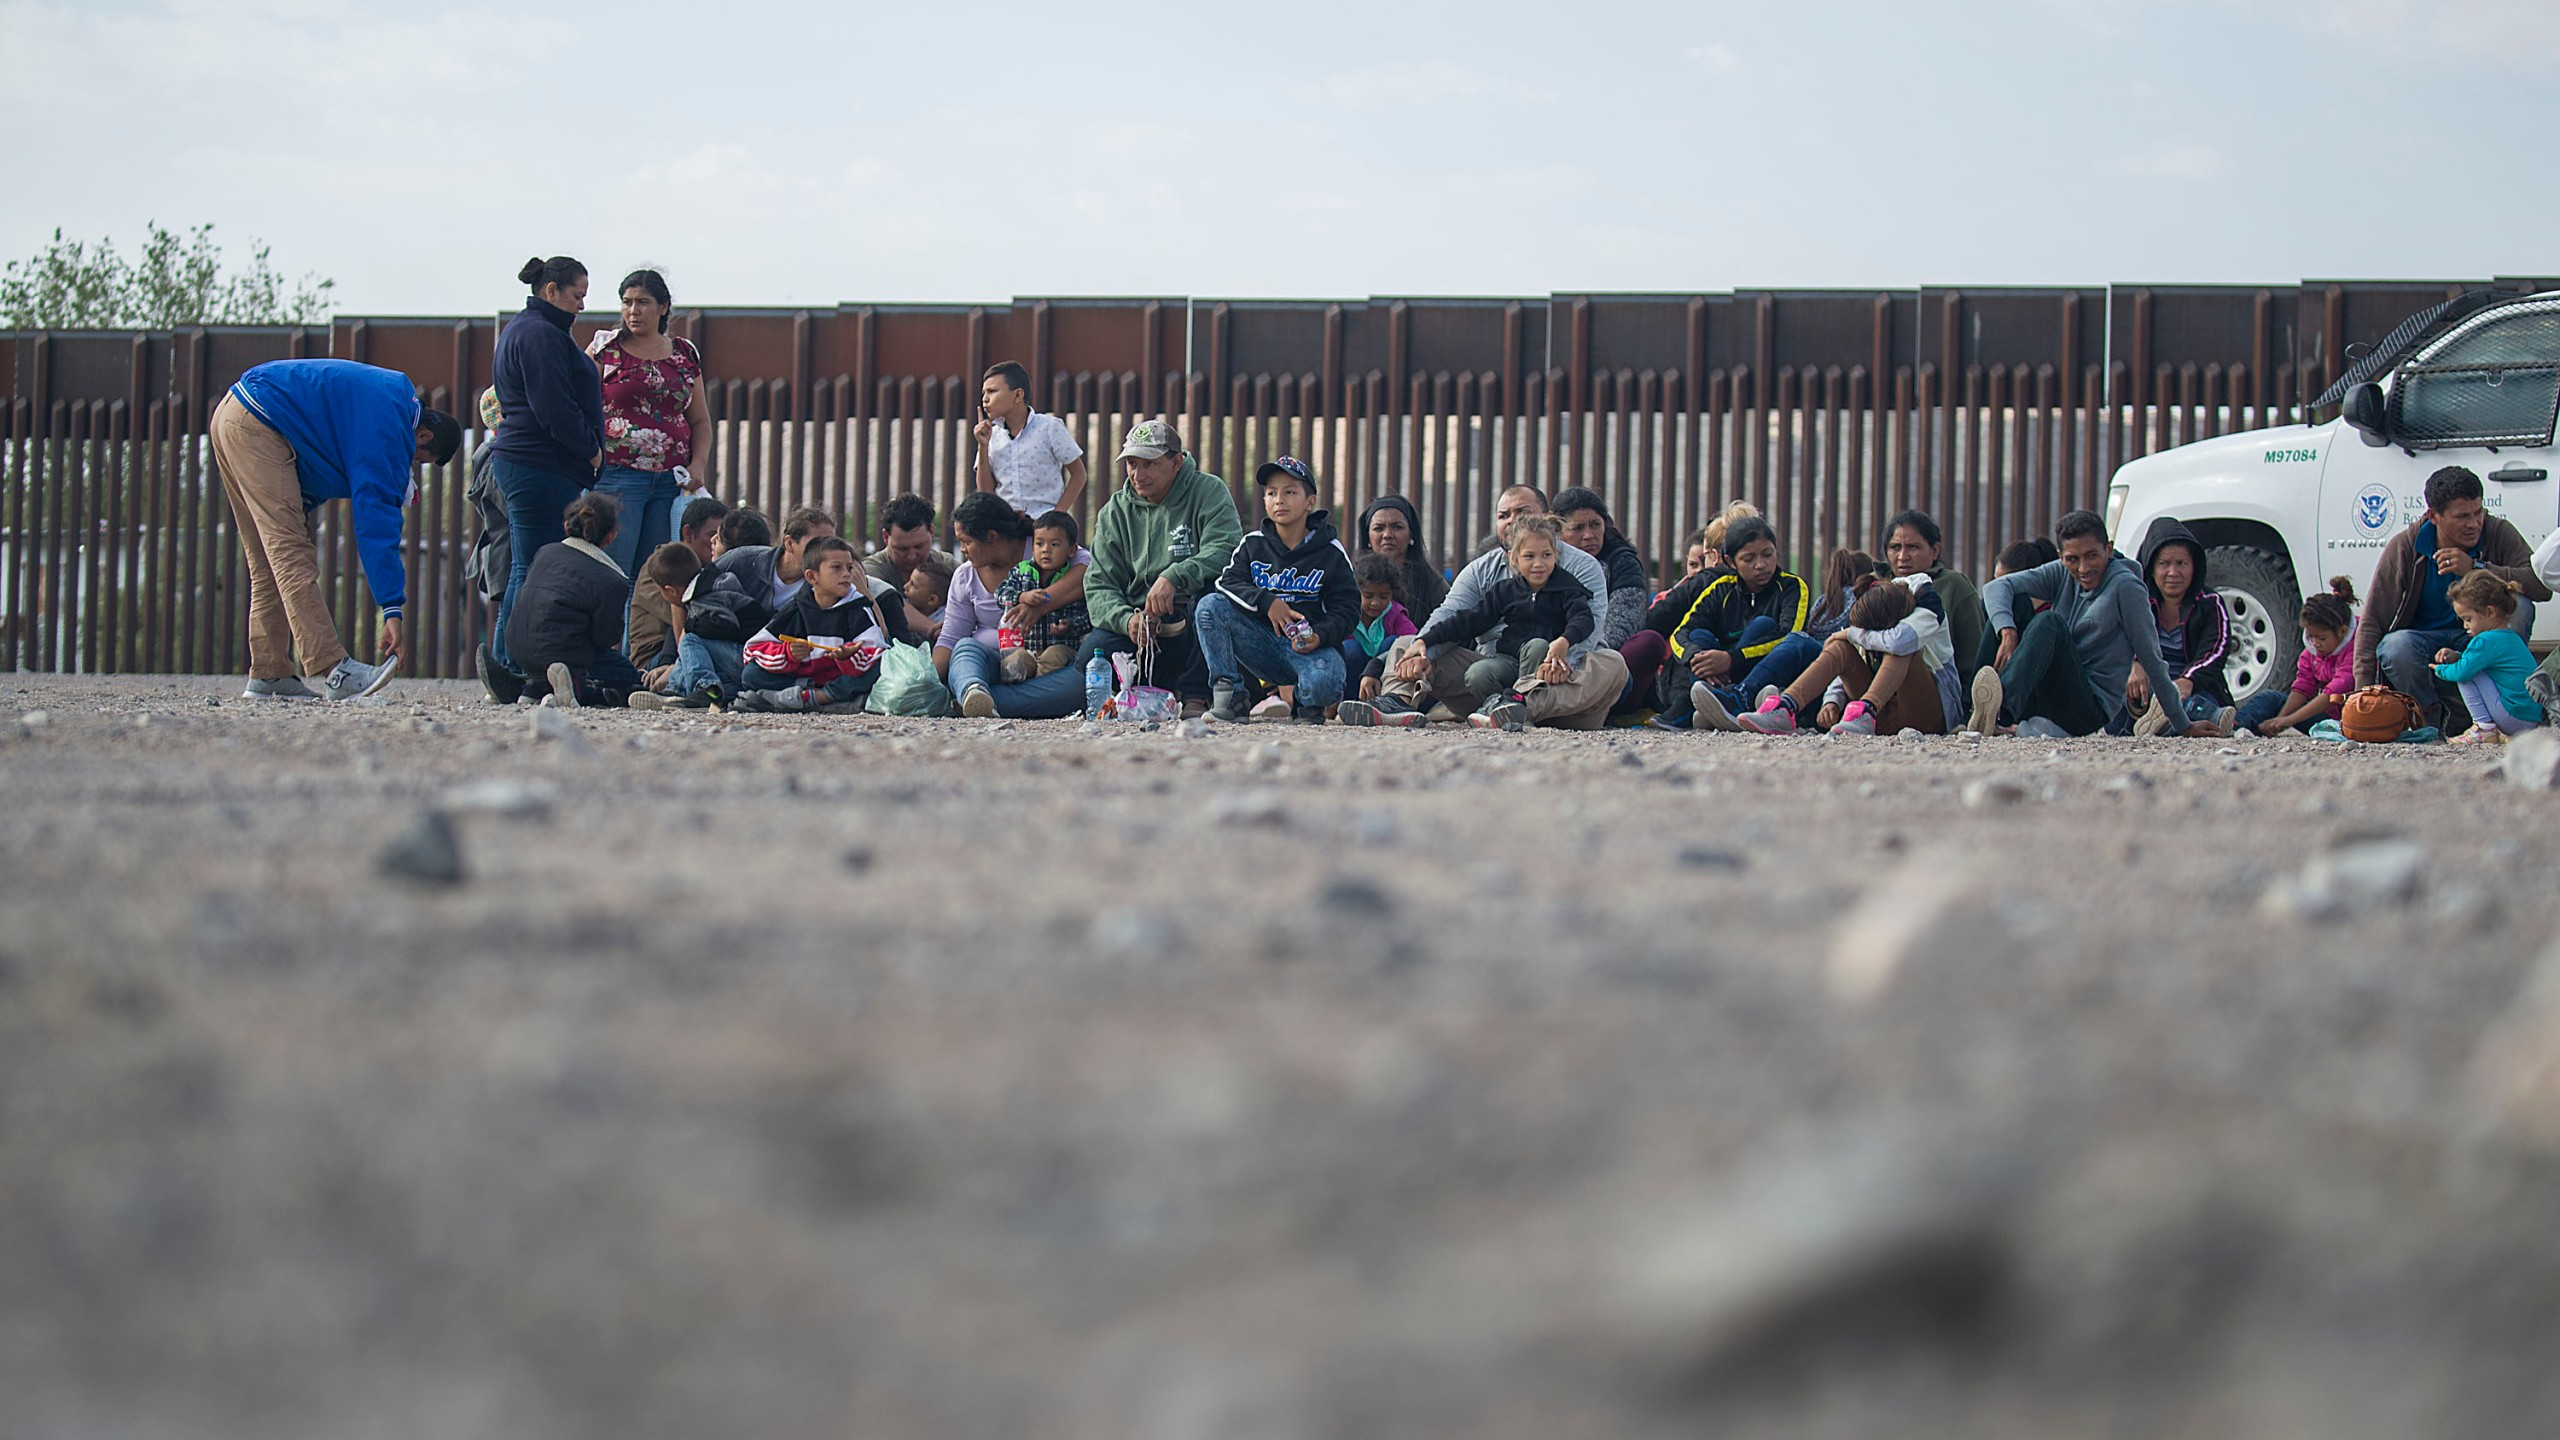 Migrants wait to be processed and loaded onto a bus by Border Patrol agents after being detained when they crossed illegally into the United States from Mexico on June 02, 2019 in Sunland Park, New Mexico. (Credit: Joe Raedle/Getty Images)